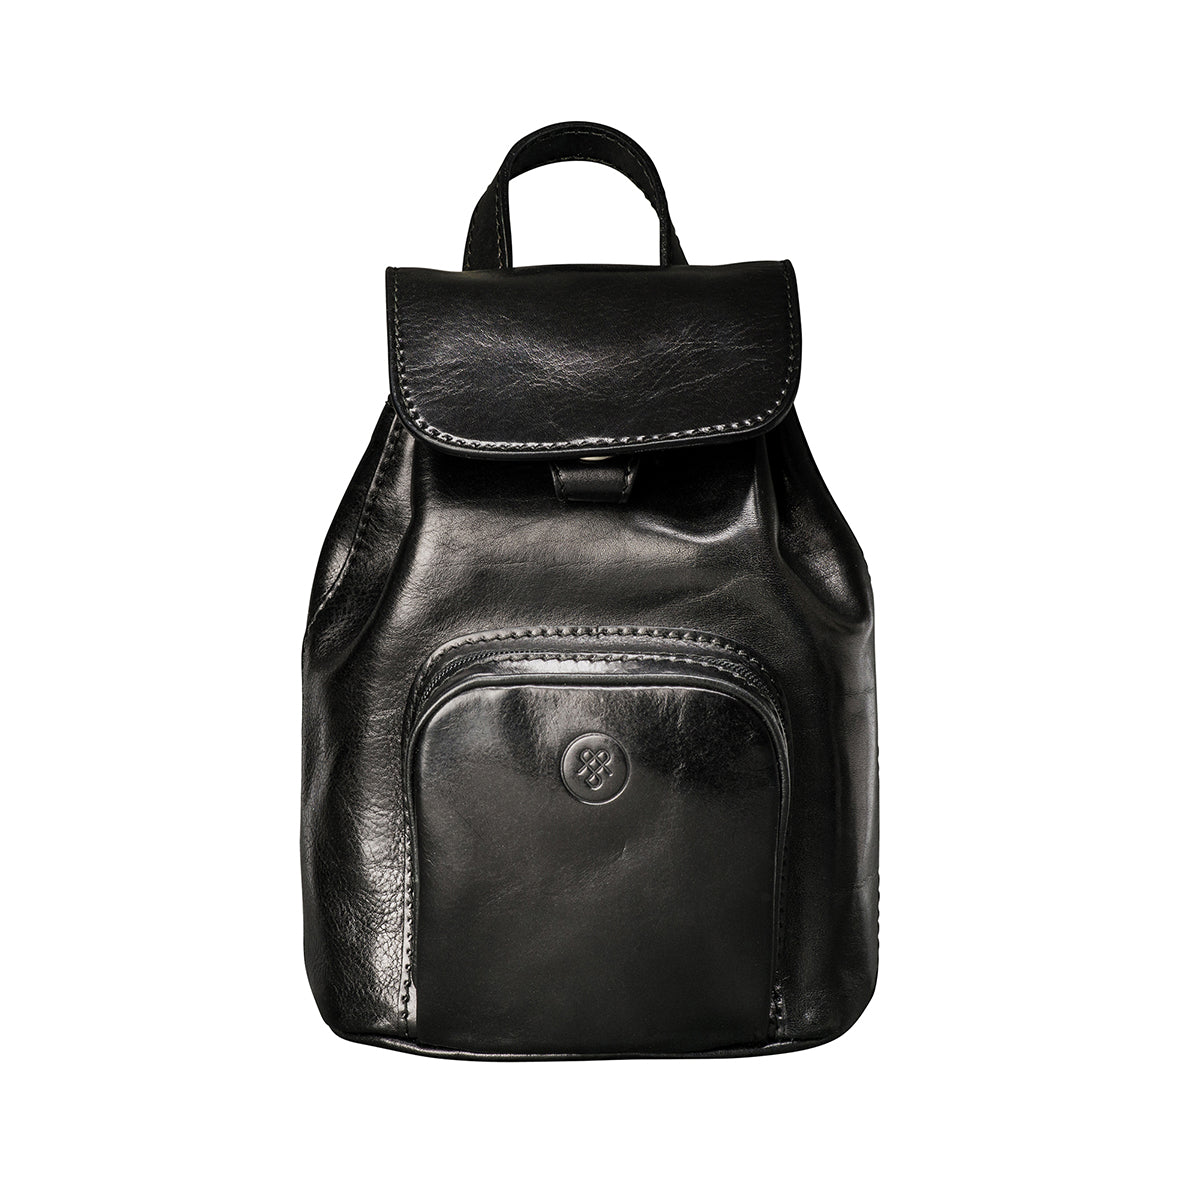 Image 1 of the 'Popolo' Compact Black Veg-Tanned Leather Shoulder Bag